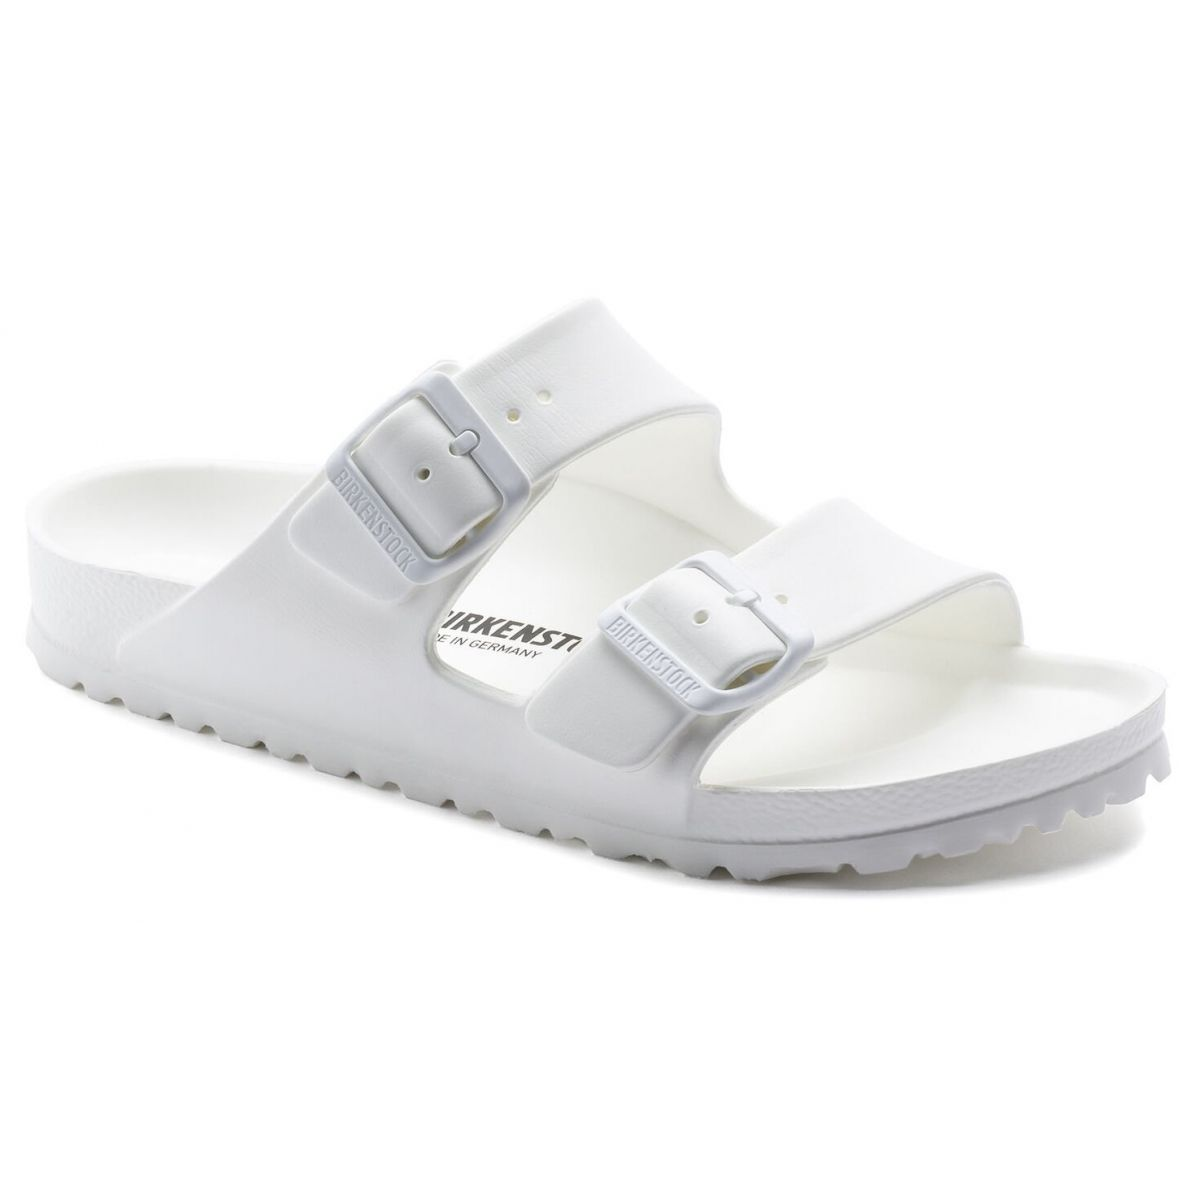 BIRKENSTOCK BIRKENSTOCK ARIZONA narrow EVA holiday br Wit white